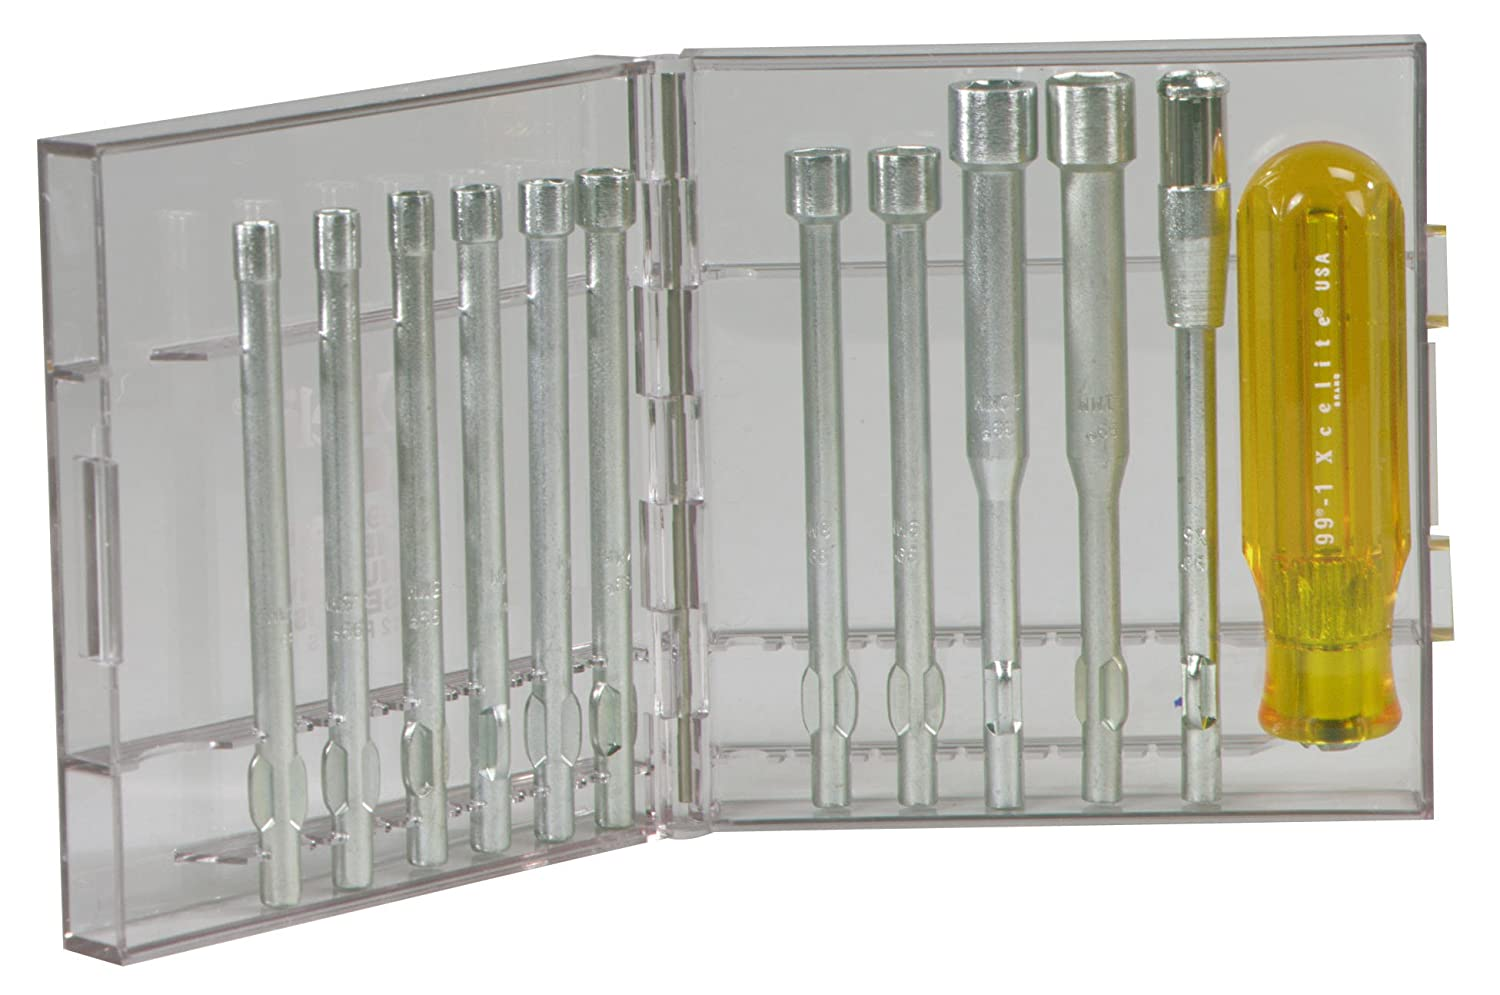 Limited time sale Xcelite 99PS51MM 12-Piece Sale special price Series Set Compact Nutdriver 99